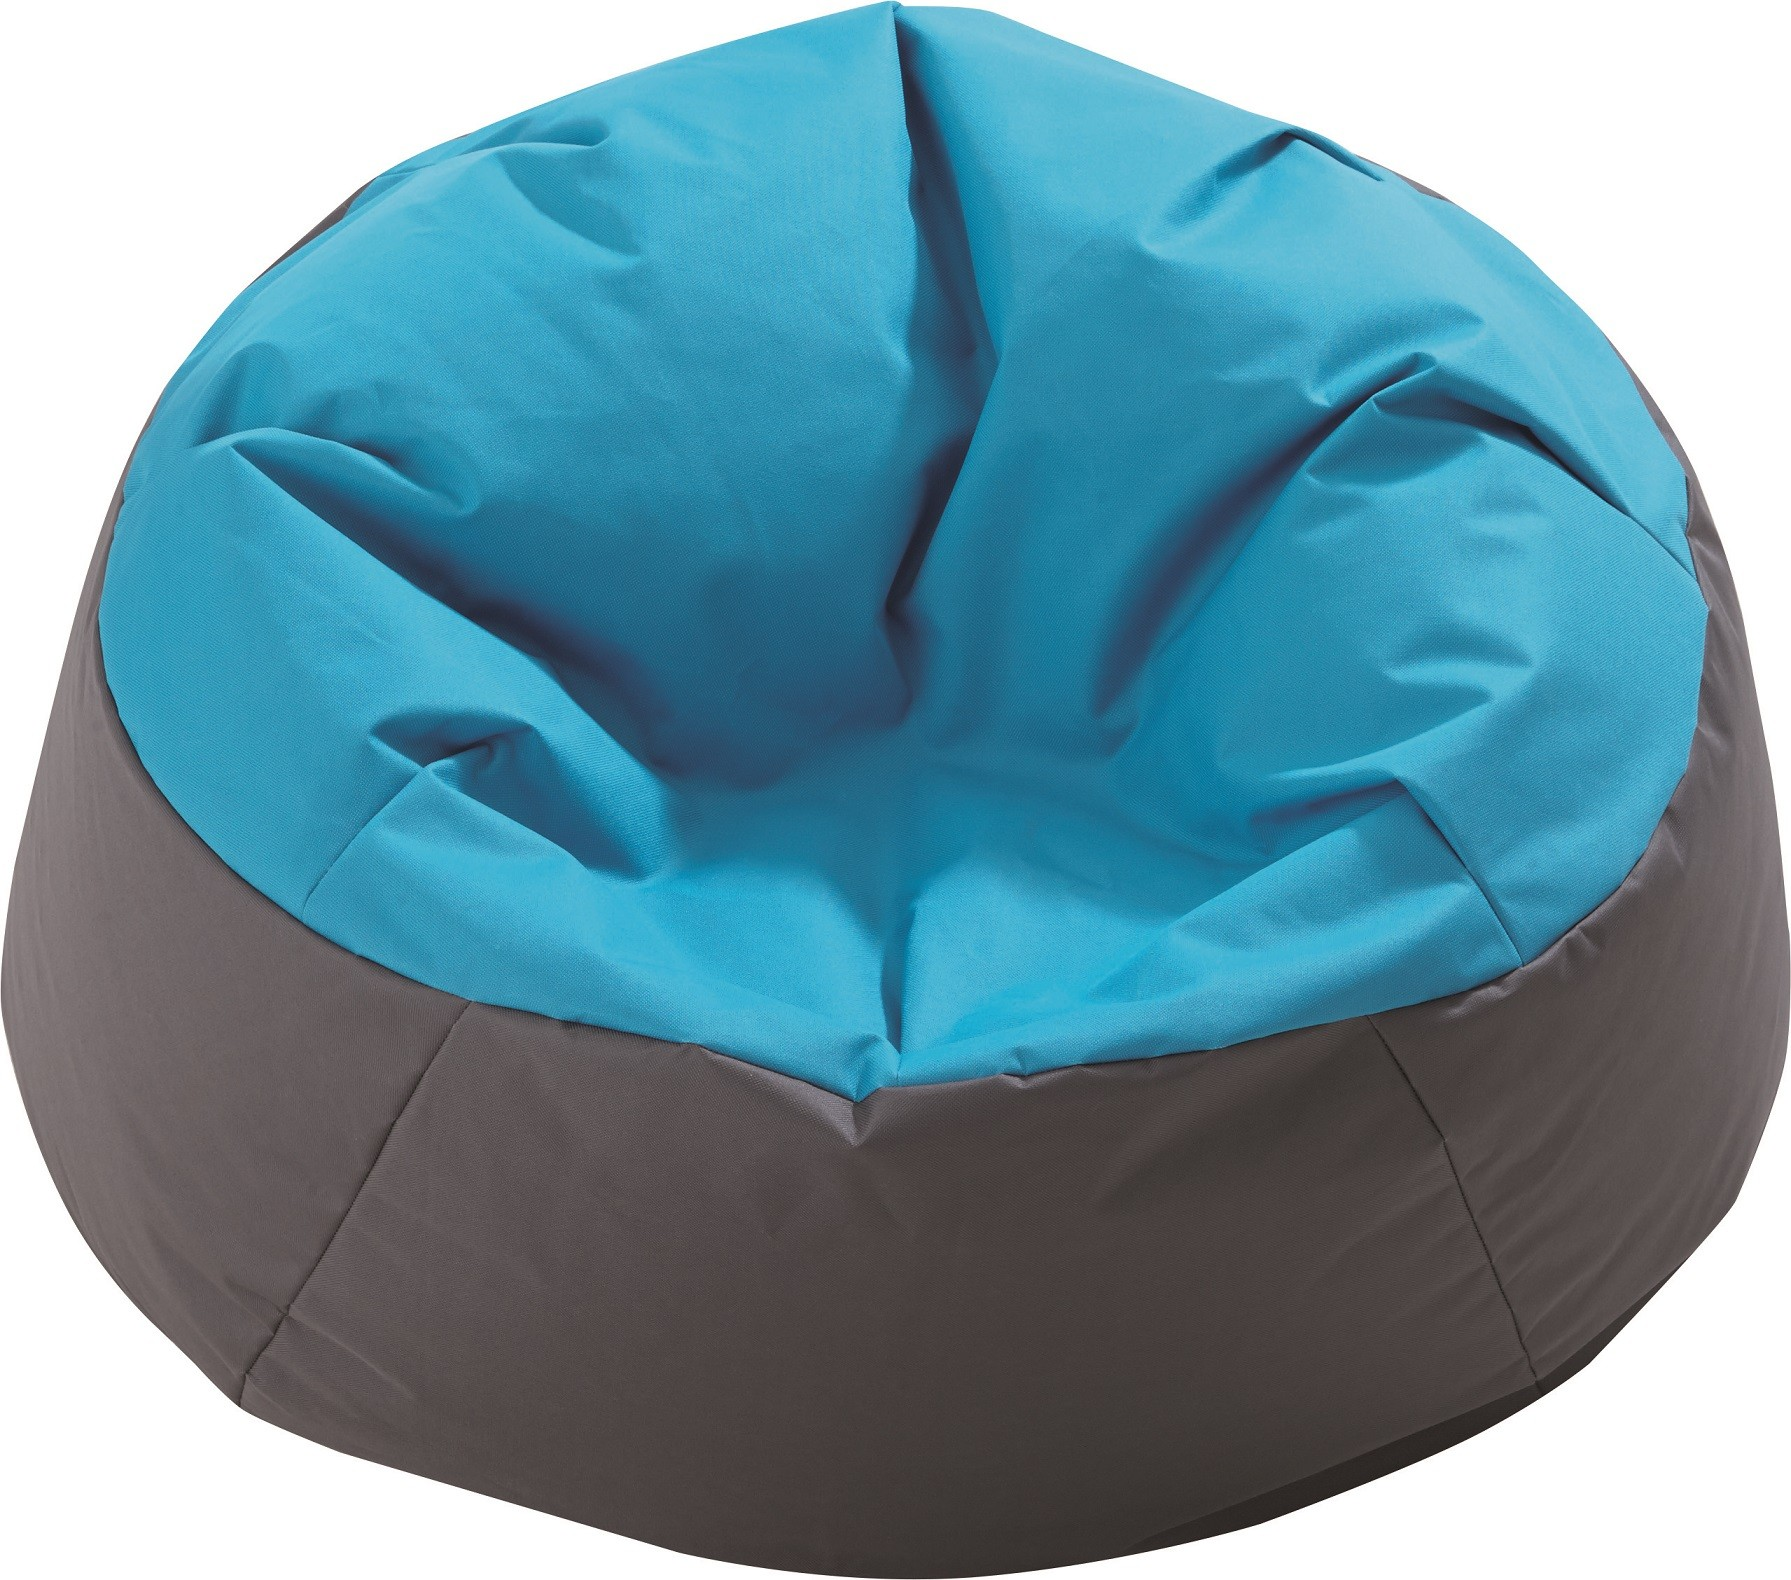 teal bean bag chair best massage reviews ball and anthracite by haba 022927